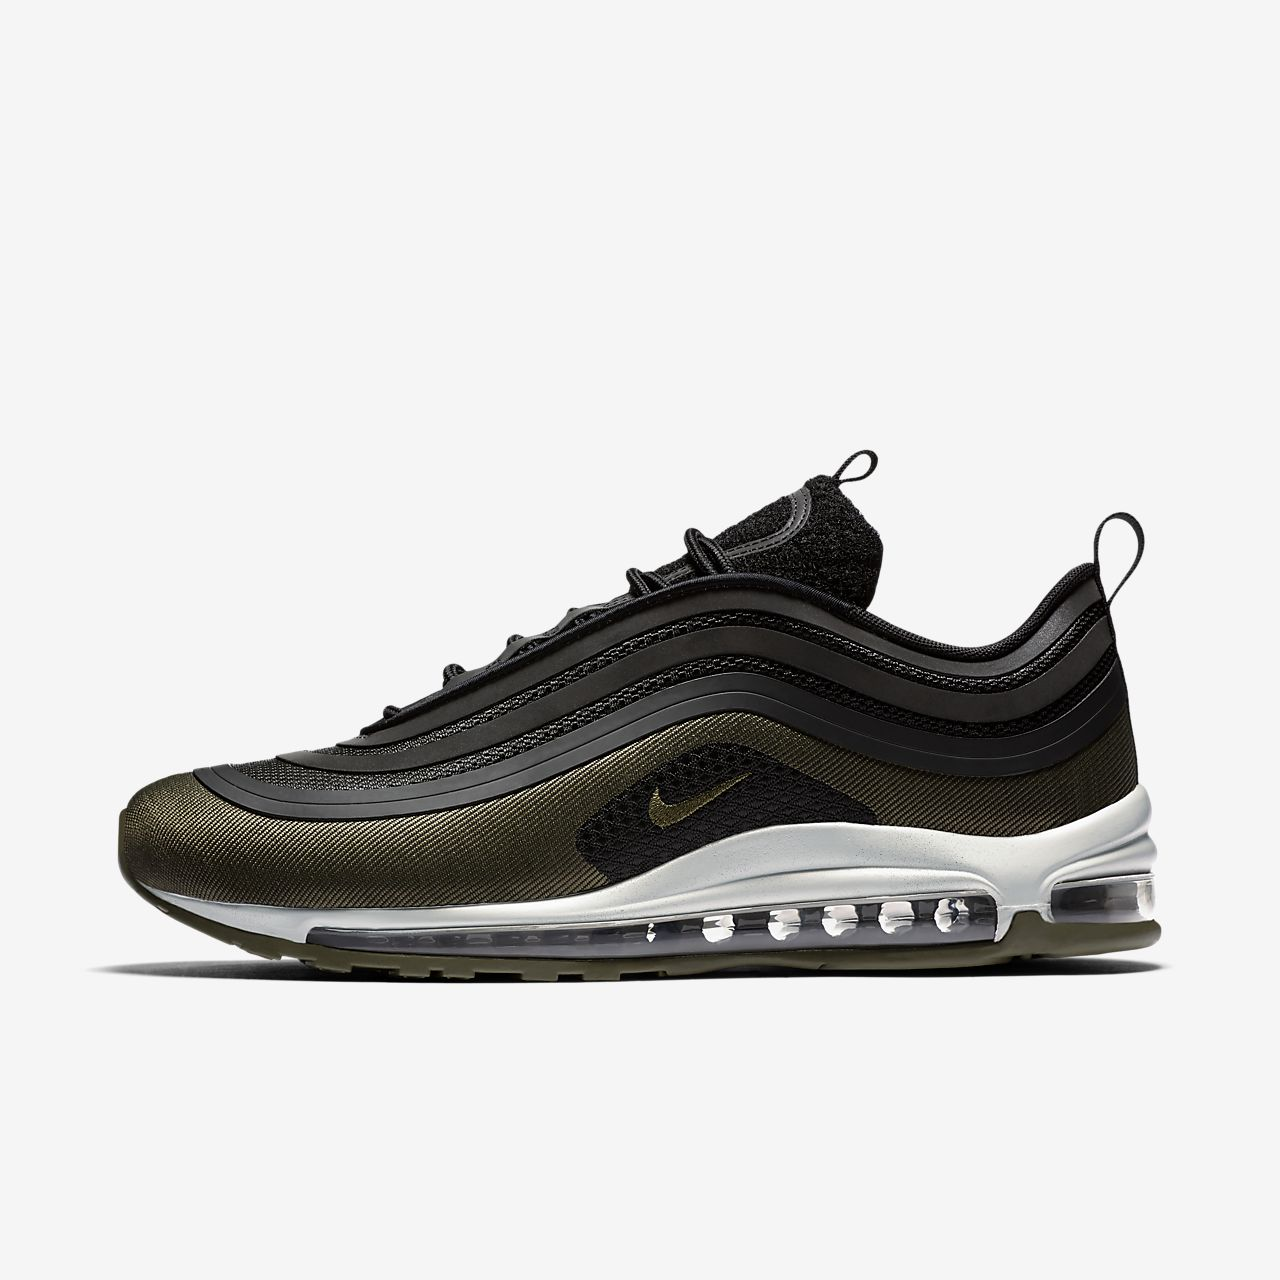 UNDEFEATED X NIKE AIR MAX 97 Undefeated